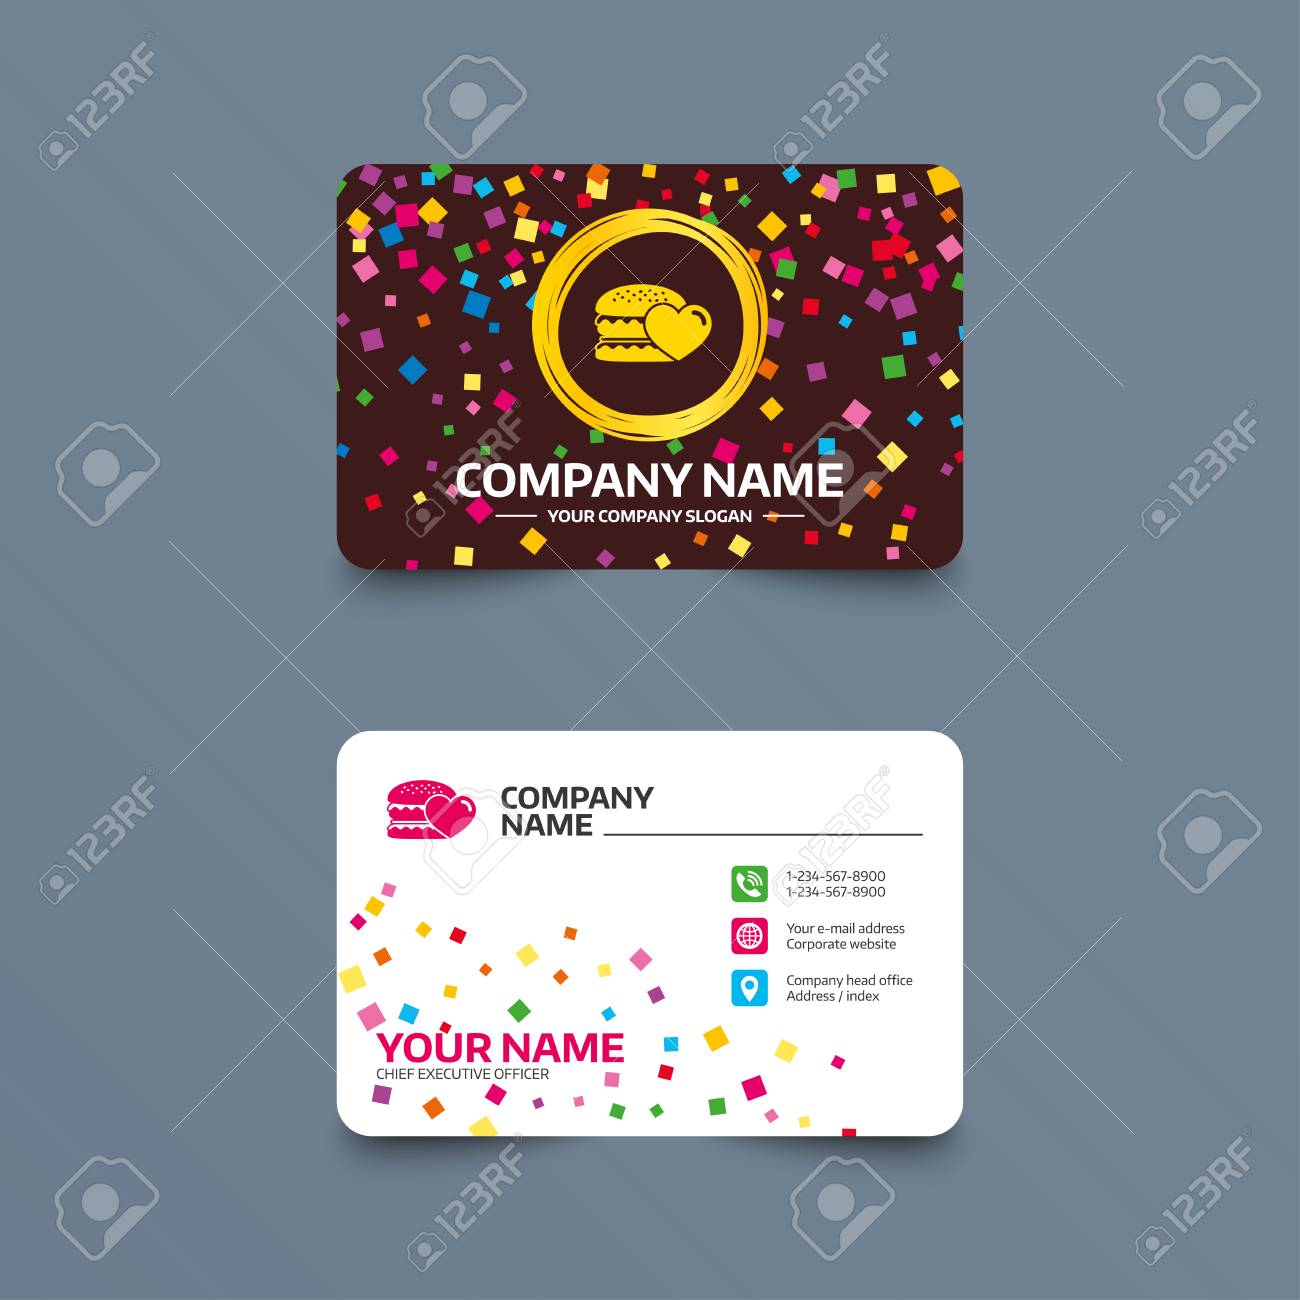 Business card template with confetti pieces hamburger icon business card template with confetti pieces hamburger icon burger food symbol cheeseburger sandwich flashek Gallery